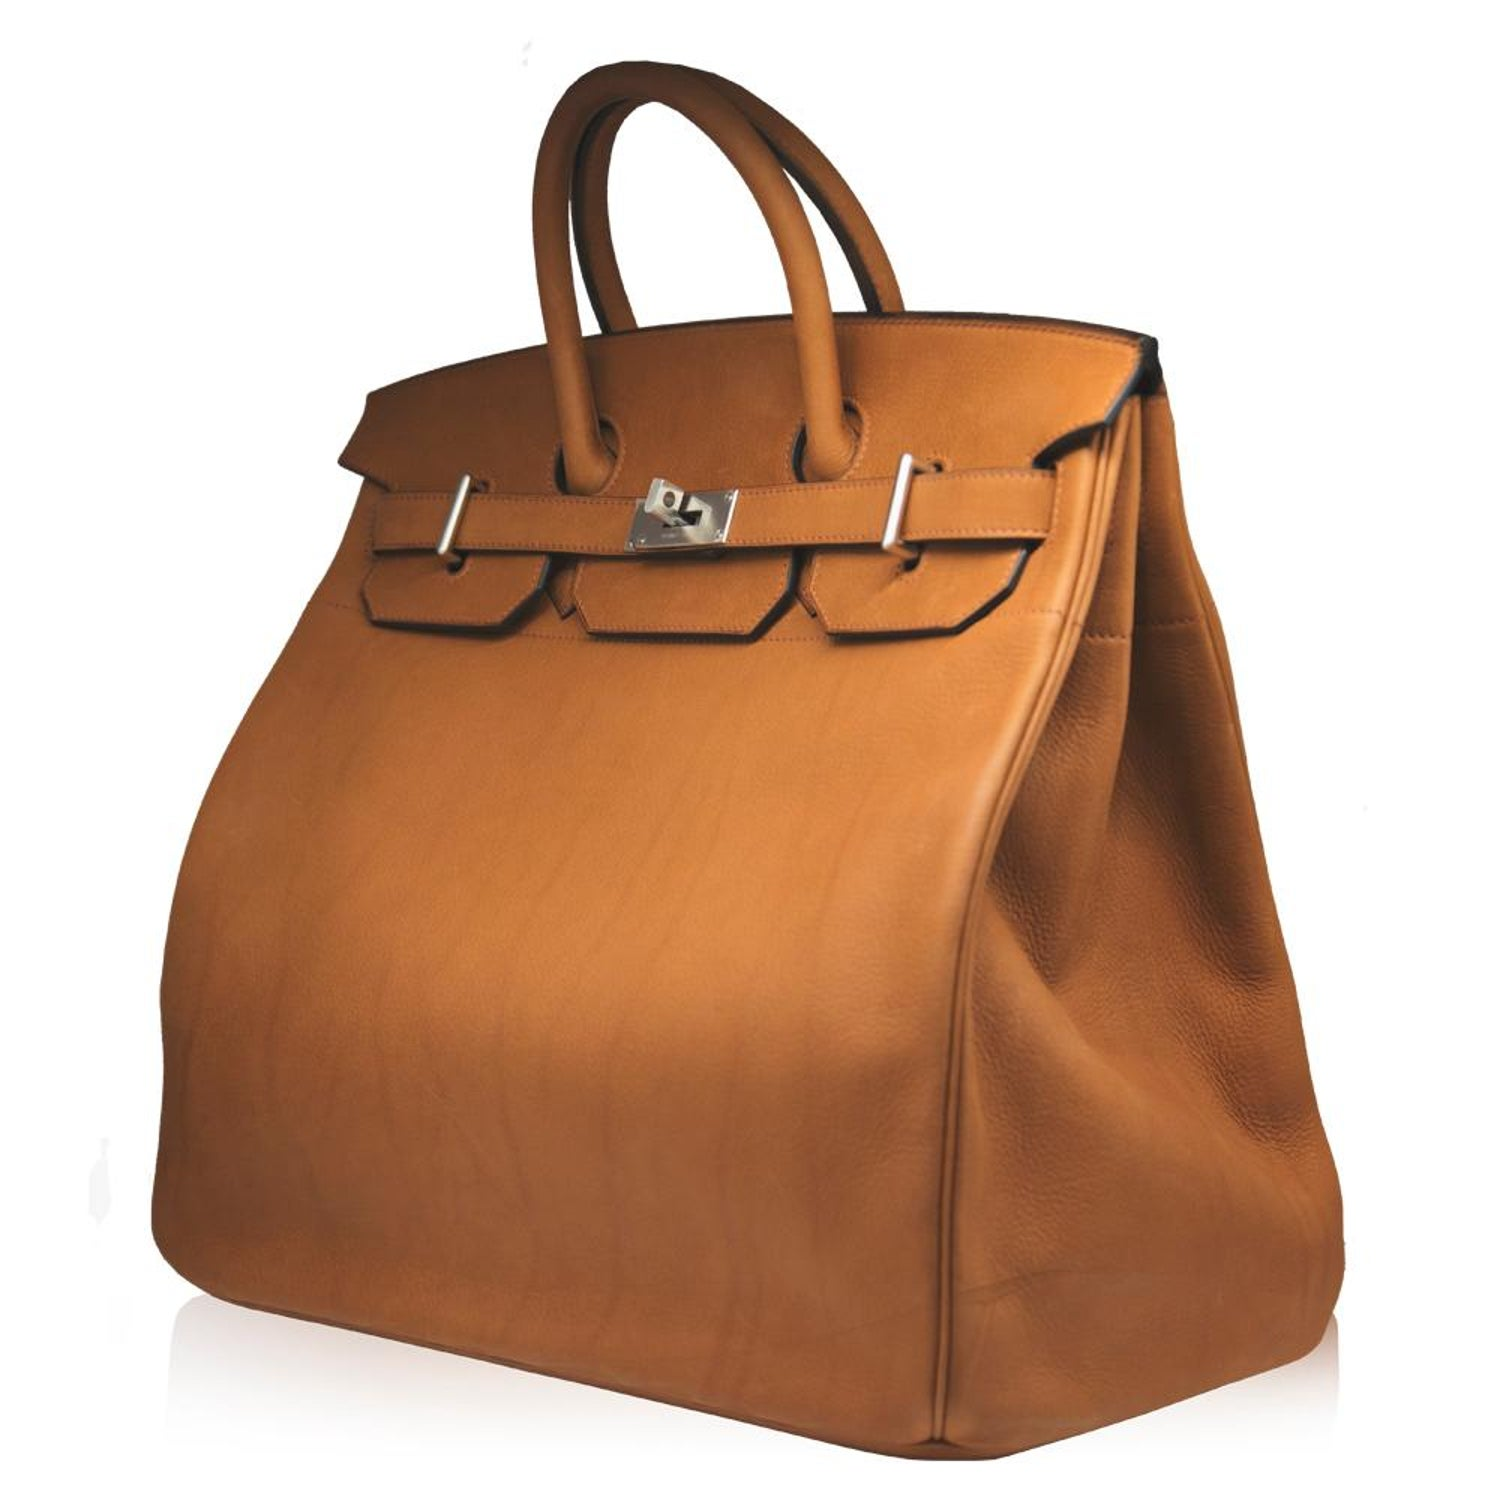 79688e6b14b5 Hermès 40cm Cuivre HAC Birkin Saddle Bag For Sale at 1stdibs